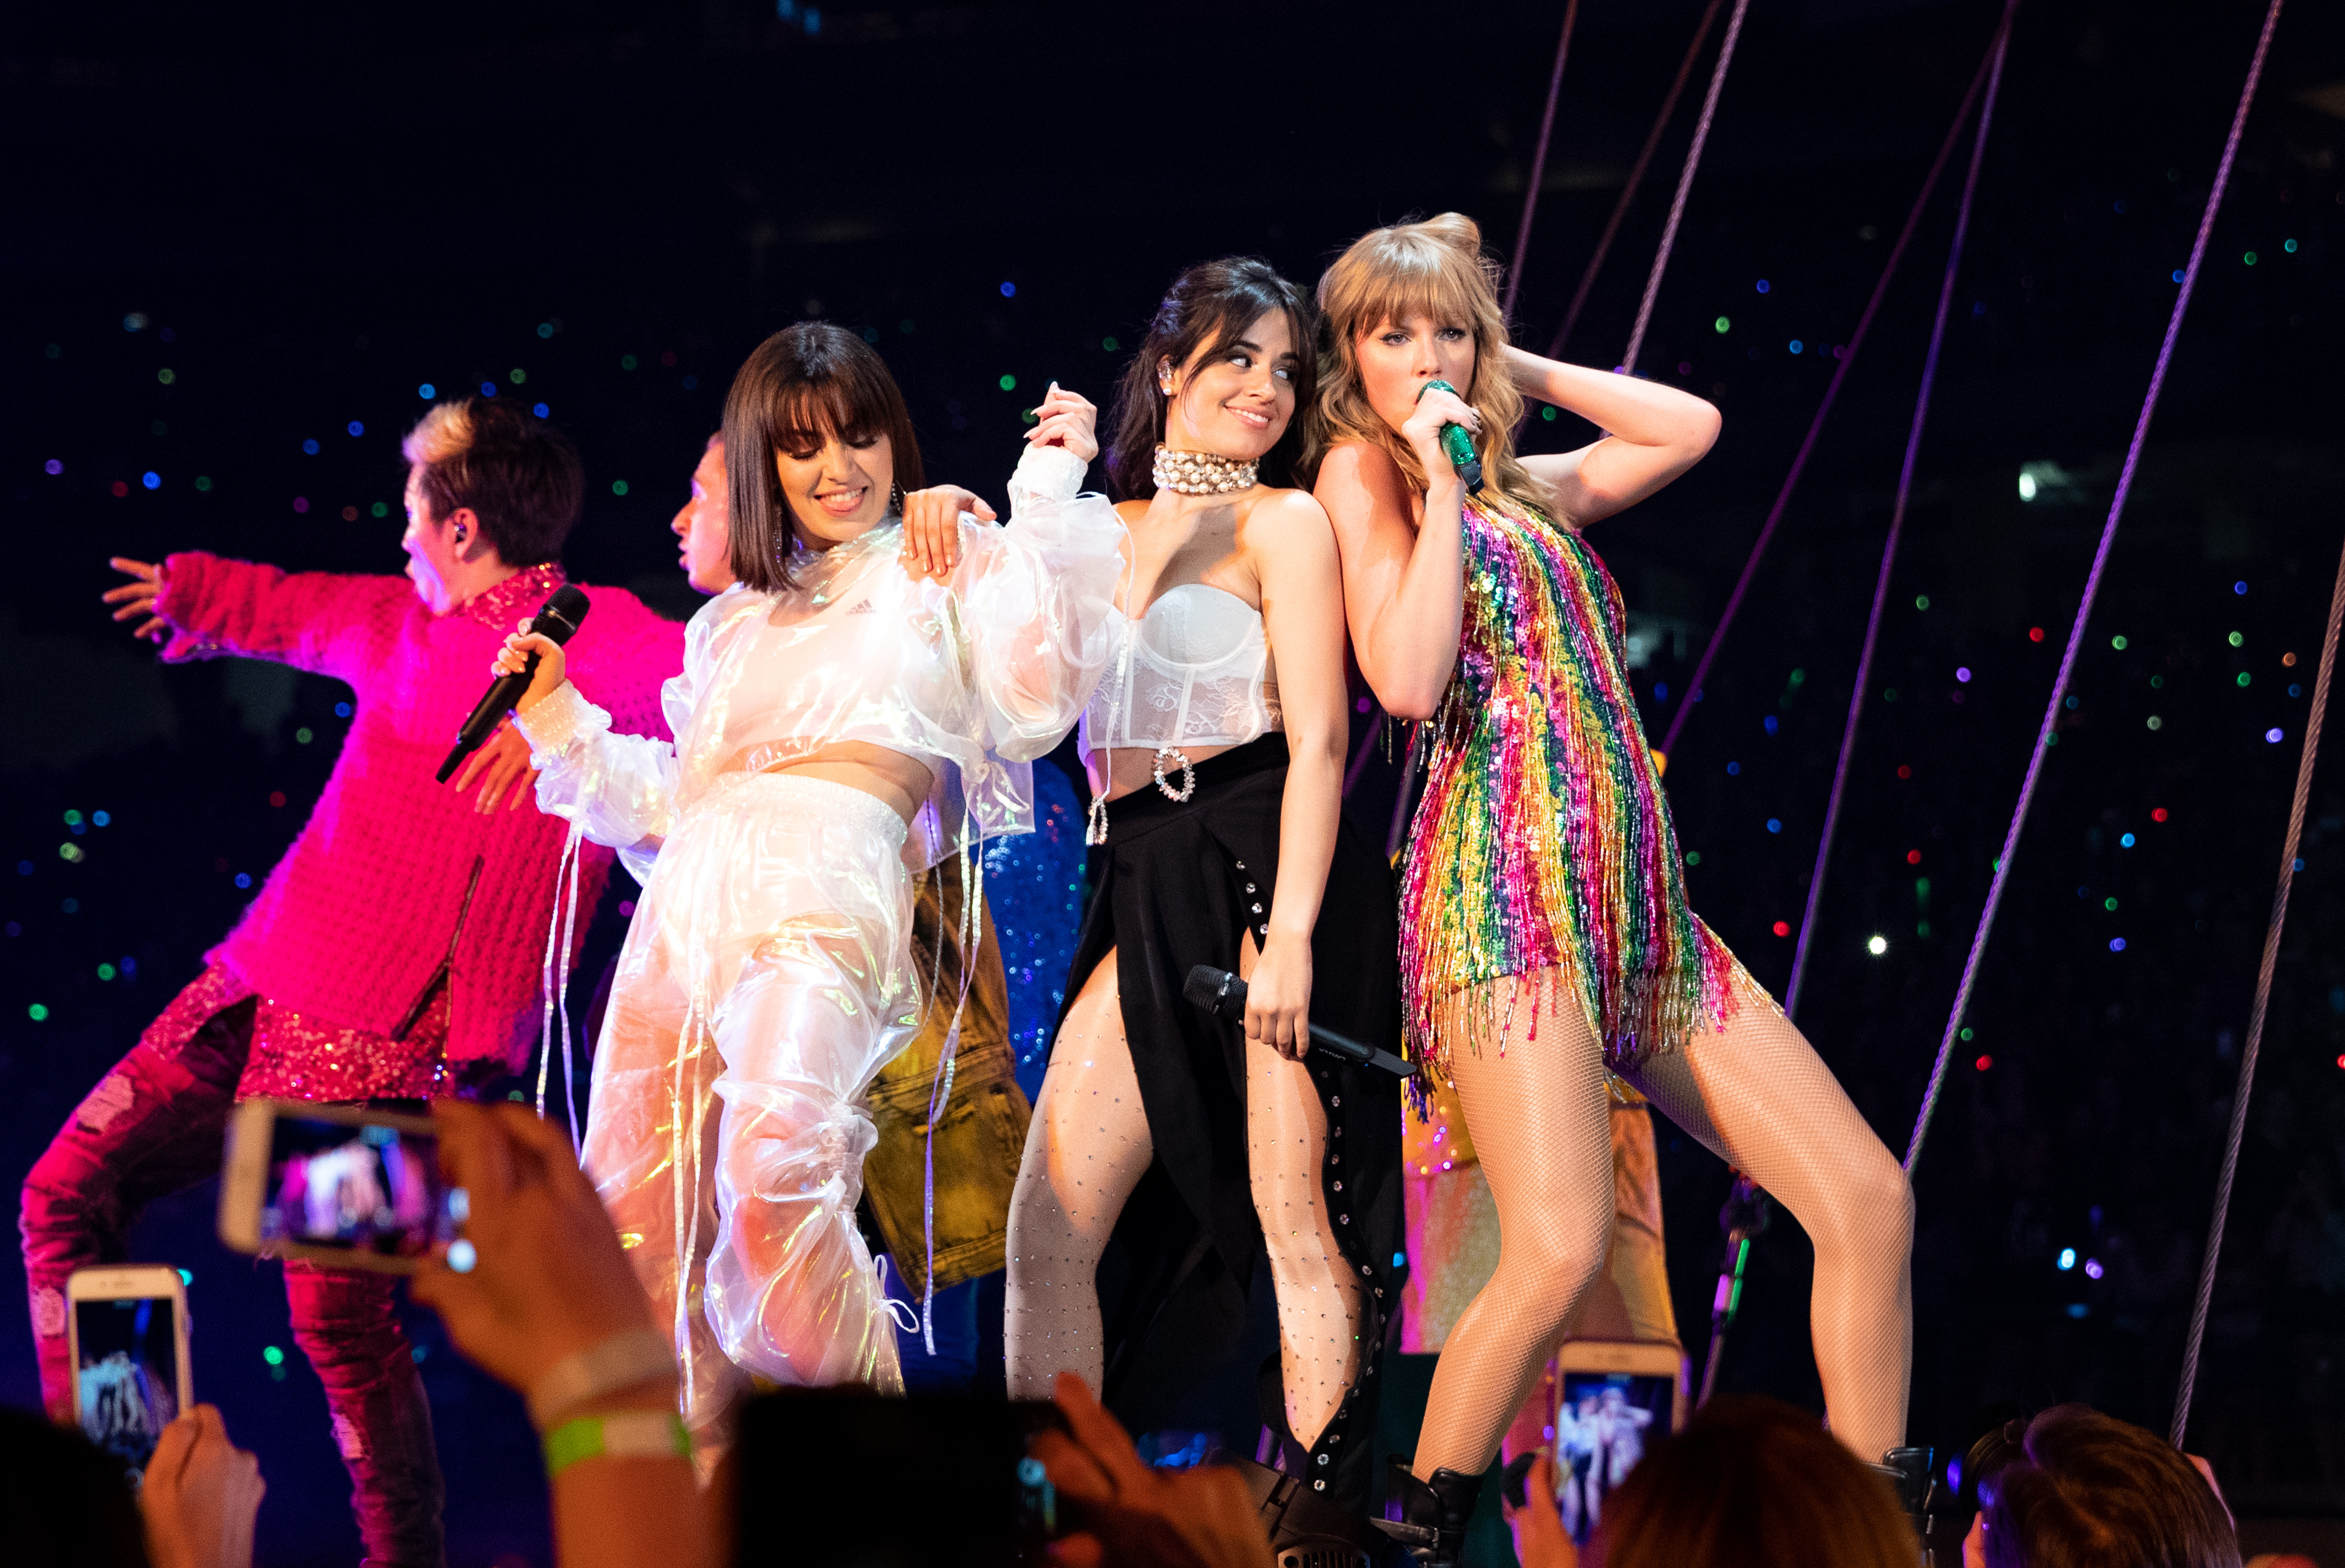 Charli XCX, Camila Cabello and Taylor Swift perform onstage during opening night of Taylor Swift's 2018 Reputation Stadium Tour at University of Phoenix Stadium on May 8, 2018 in Glendale, Ariz.